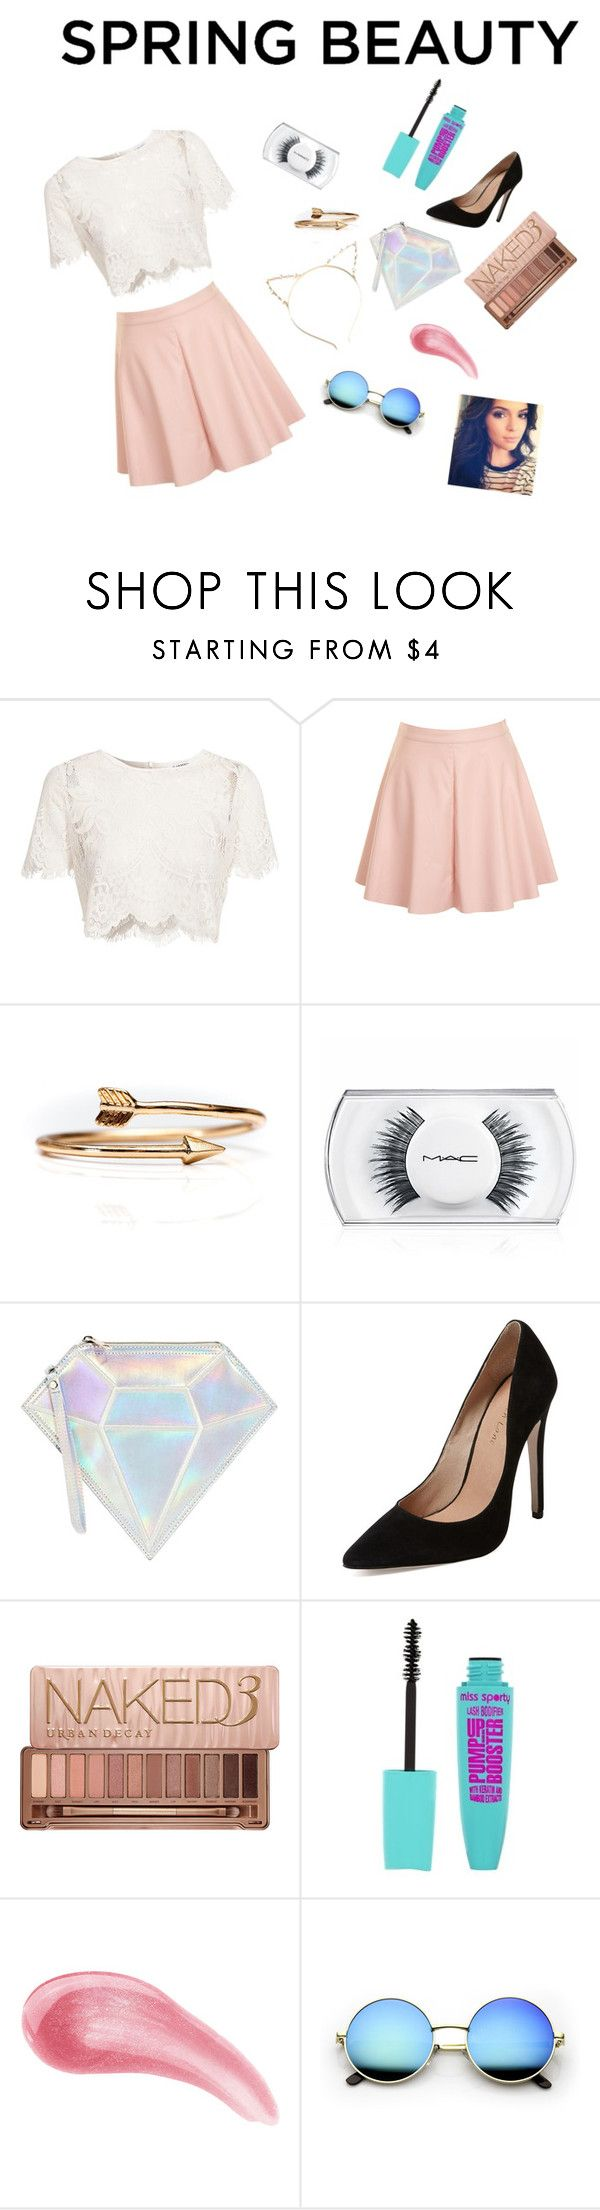 """""""Spring Beauty"""" by pinkcreamfashion ❤ liked on Polyvore featuring Glamorous, Burke Decor, MAC Cosmetics, WithChic, Maiden Lane, Urban Decay and Bare Escentuals"""